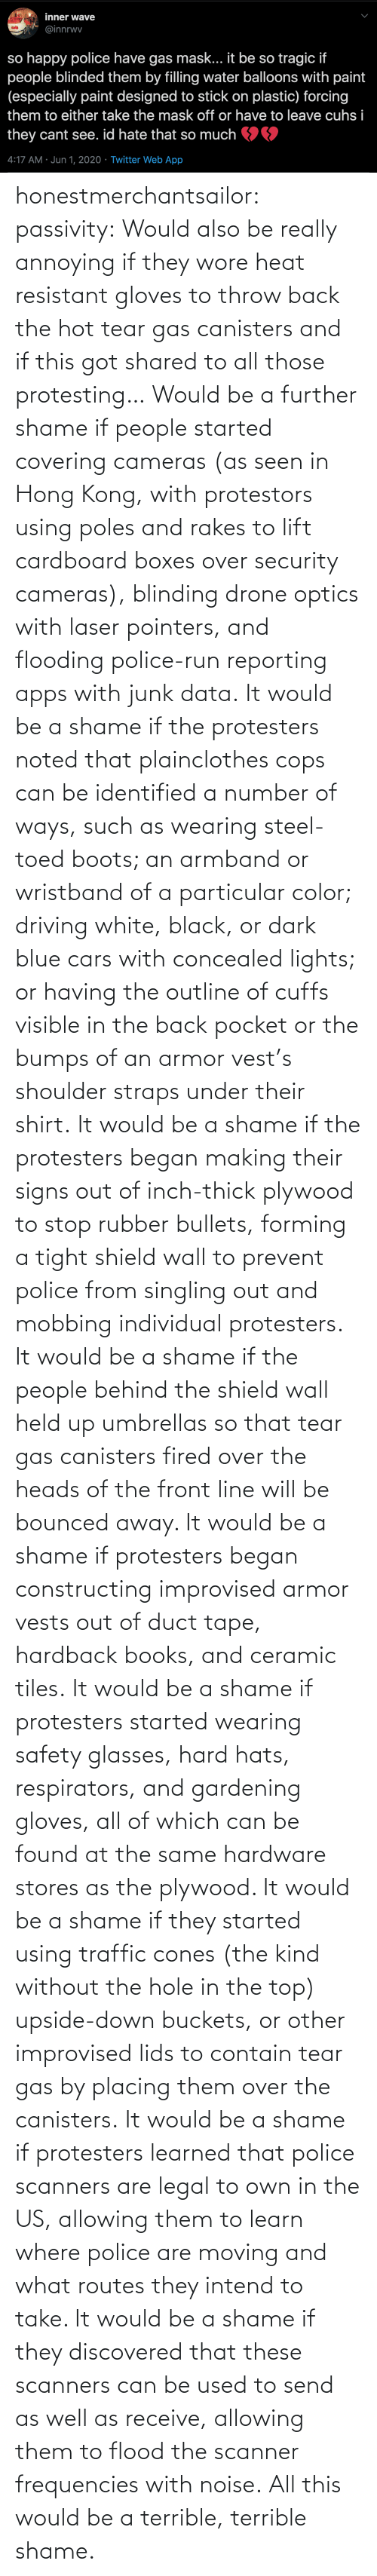 tiles: honestmerchantsailor: passivity: Would also be really annoying if they wore heat resistant gloves to throw back the hot tear gas canisters and if this got shared to all those protesting… Would be a further shame if people started covering cameras (as seen in Hong Kong, with protestors using poles and rakes to lift cardboard boxes over security cameras), blinding drone optics with laser pointers, and flooding police-run reporting apps with junk data. It would be a shame if the protesters noted that plainclothes cops can be identified a number of ways, such as wearing steel-toed boots; an armband or wristband of a particular color; driving white, black, or dark blue cars with concealed lights; or having the outline of cuffs visible in the back pocket or the bumps of an armor vest's shoulder straps under their shirt. It would be a shame if the protesters began making their signs out of inch-thick plywood to stop rubber bullets, forming a tight shield wall to prevent police from singling out and mobbing individual protesters. It would be a shame if the people behind the shield wall held up umbrellas so that tear gas canisters fired over the heads of the front line will be bounced away. It would be a shame if protesters began constructing improvised armor vests out of duct tape, hardback books, and ceramic tiles. It would be a shame if protesters started wearing safety glasses, hard hats, respirators, and gardening gloves, all of which can be found at the same hardware stores as the plywood. It would be a shame if they started using traffic cones (the kind without the hole in the top) upside-down buckets, or other improvised lids to contain tear gas by placing them over the canisters. It would be a shame if protesters learned that police scanners are legal to own in the US, allowing them to learn where police are moving and what routes they intend to take. It would be a shame if they discovered that these scanners can be used to send as well as receive, allowing them to flood the scanner frequencies with noise. All this would be a terrible, terrible shame.